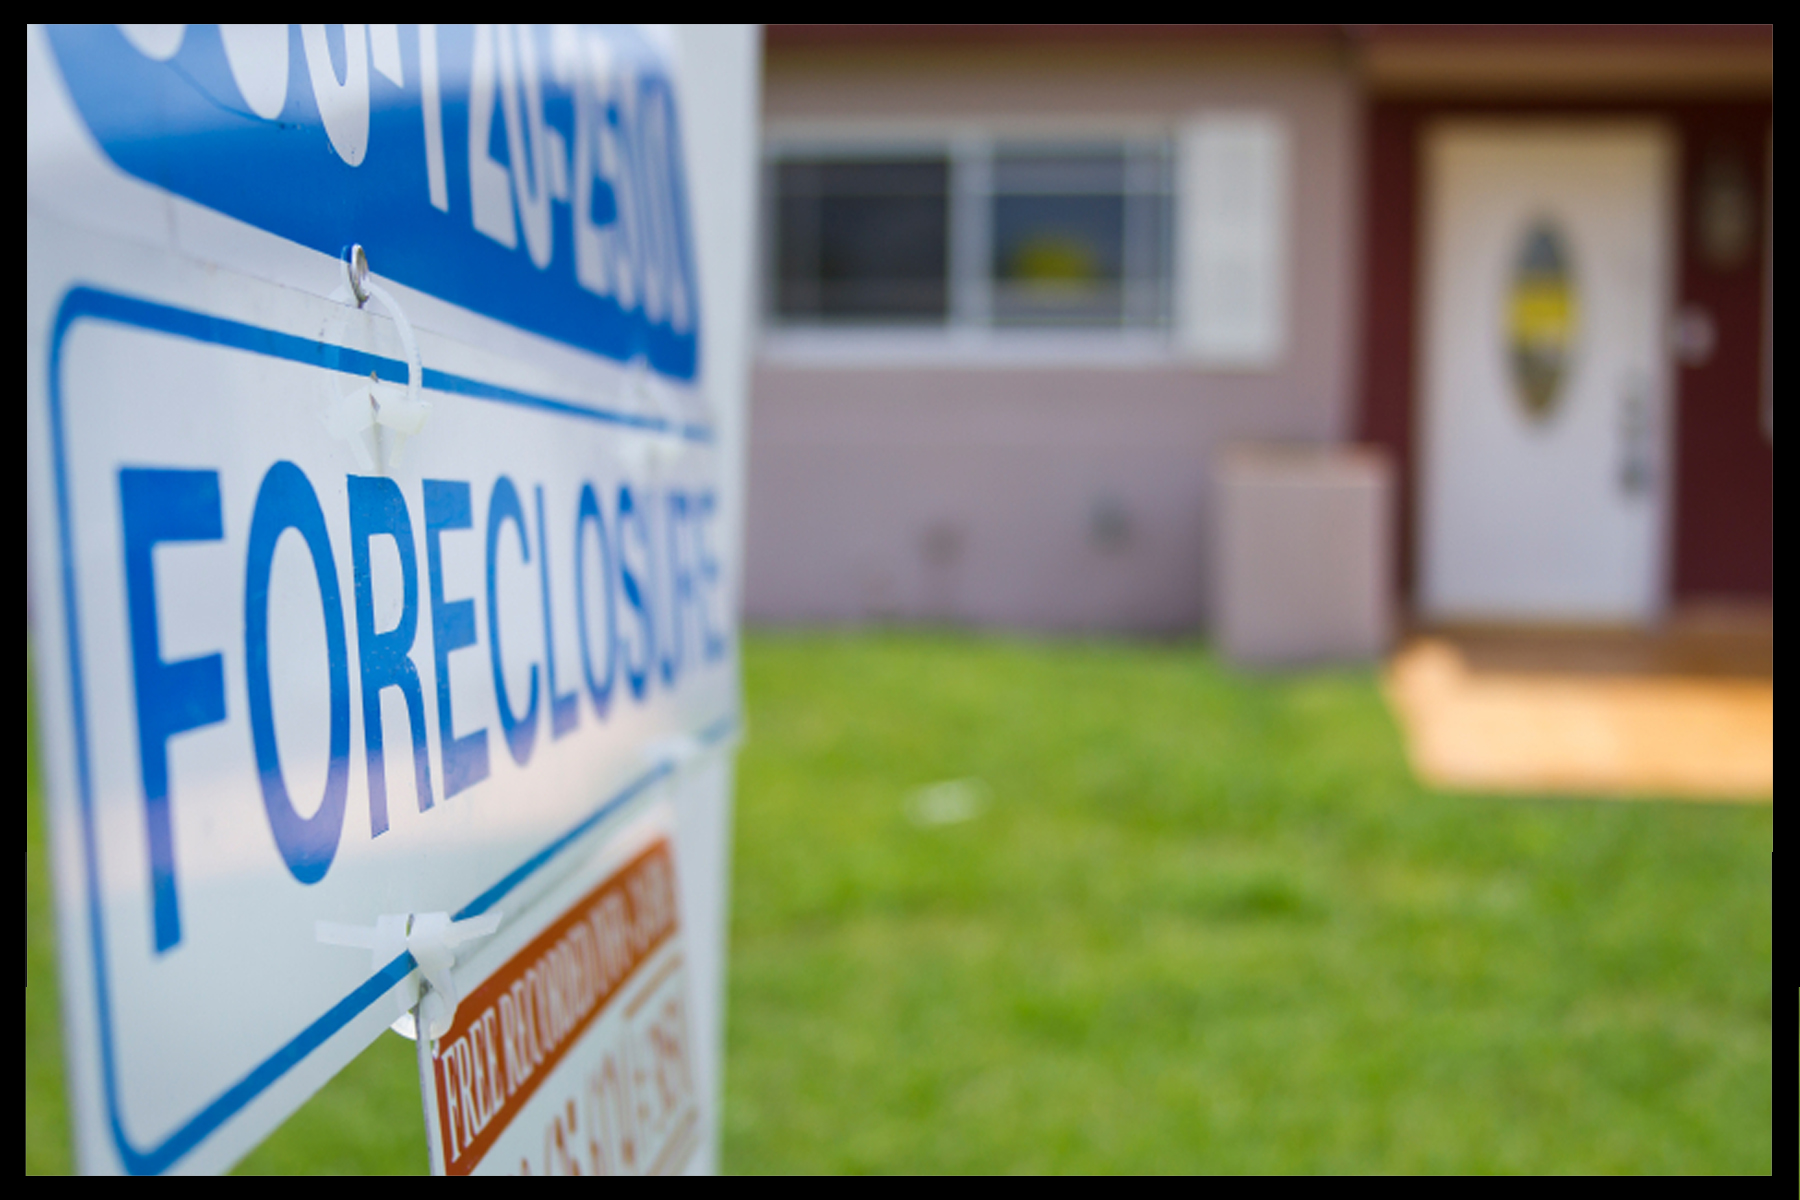 March 2014 - Foreclosure